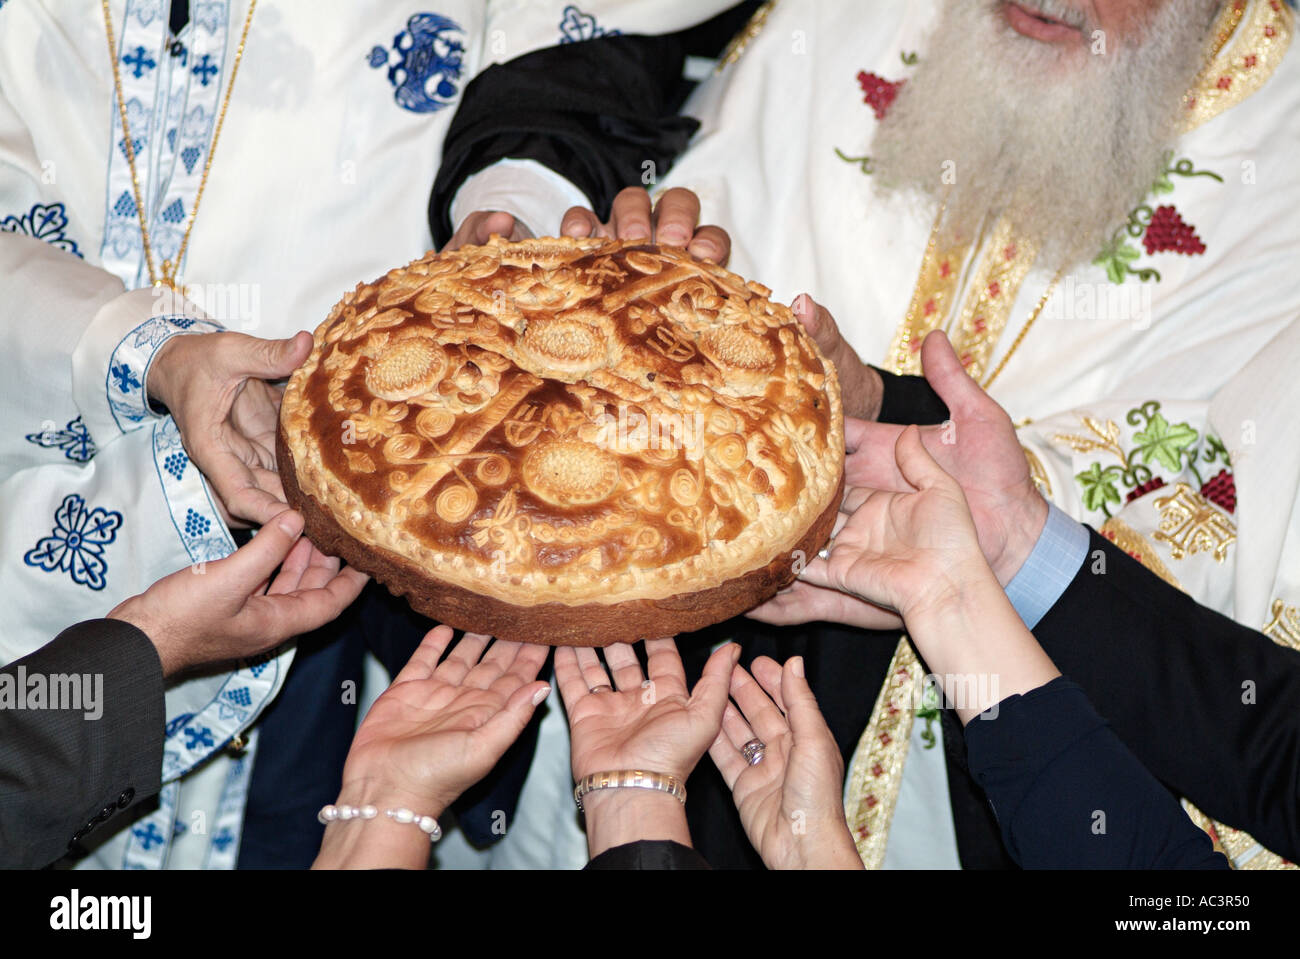 Stock Cuisine Saint Priest Orthodox Priests Blessing Bread During Holy Communion On Saint